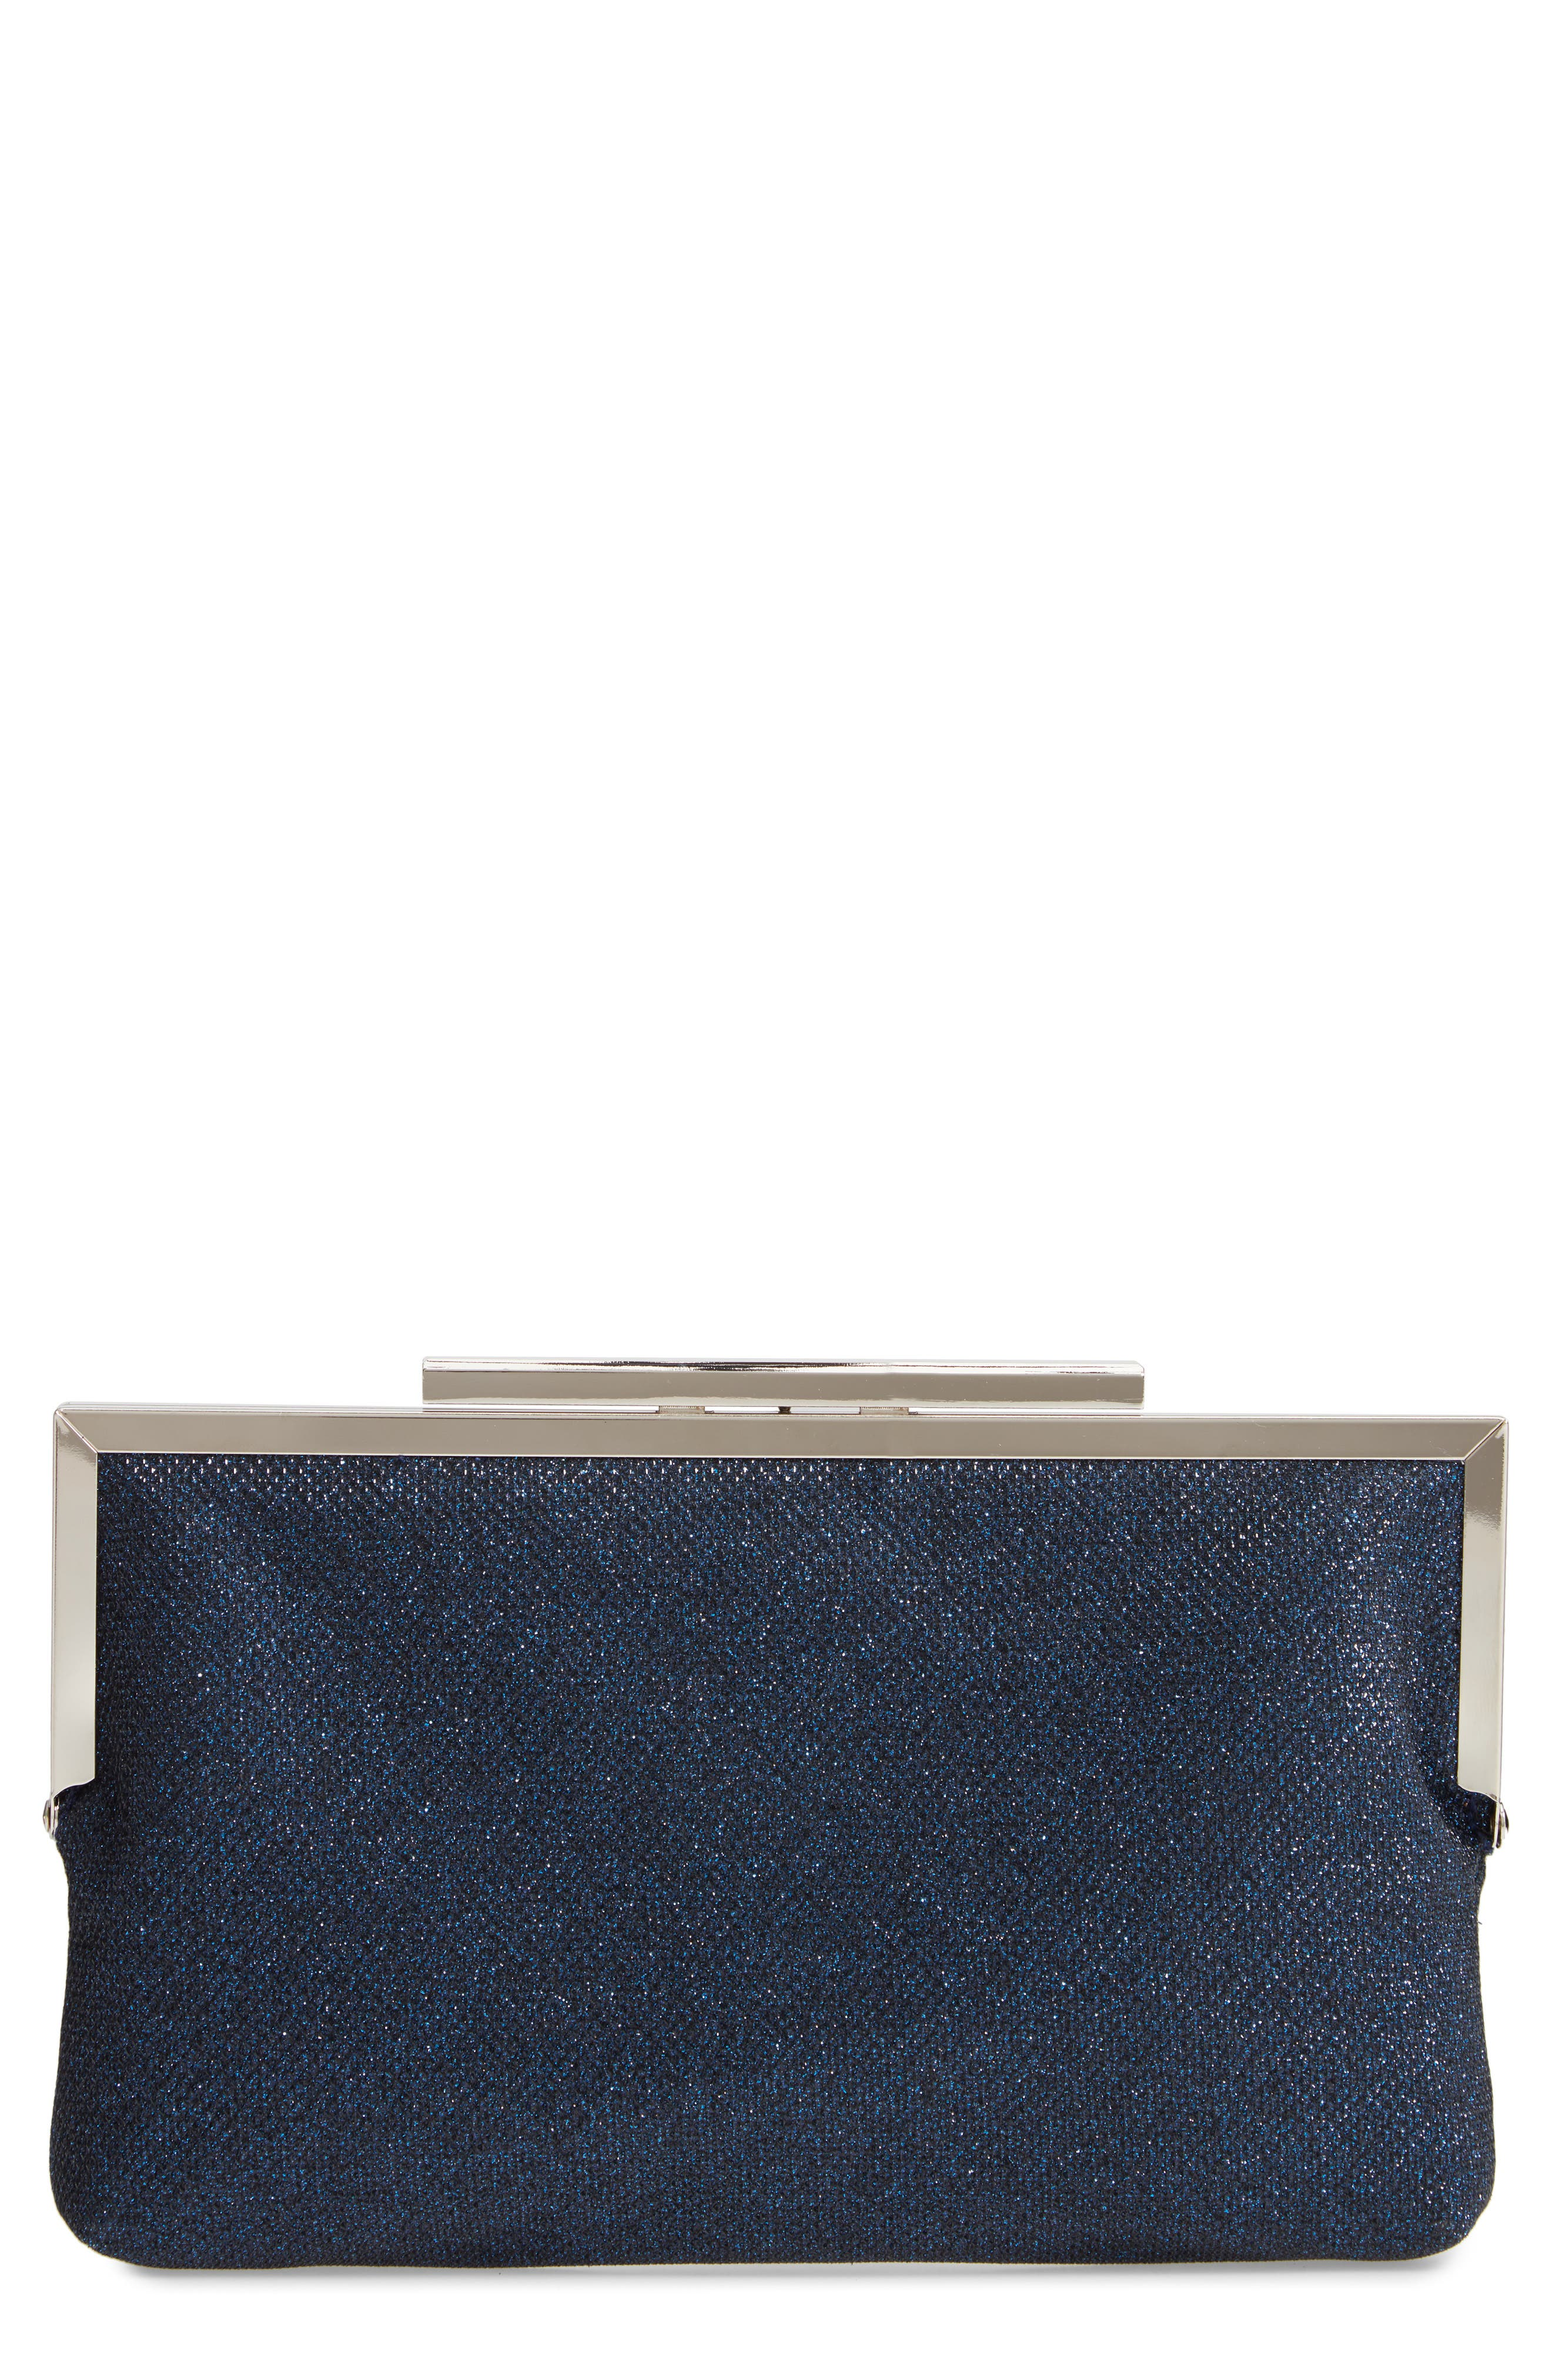 NINA, Louella Metallic Mesh Clutch, Main thumbnail 1, color, NAVY